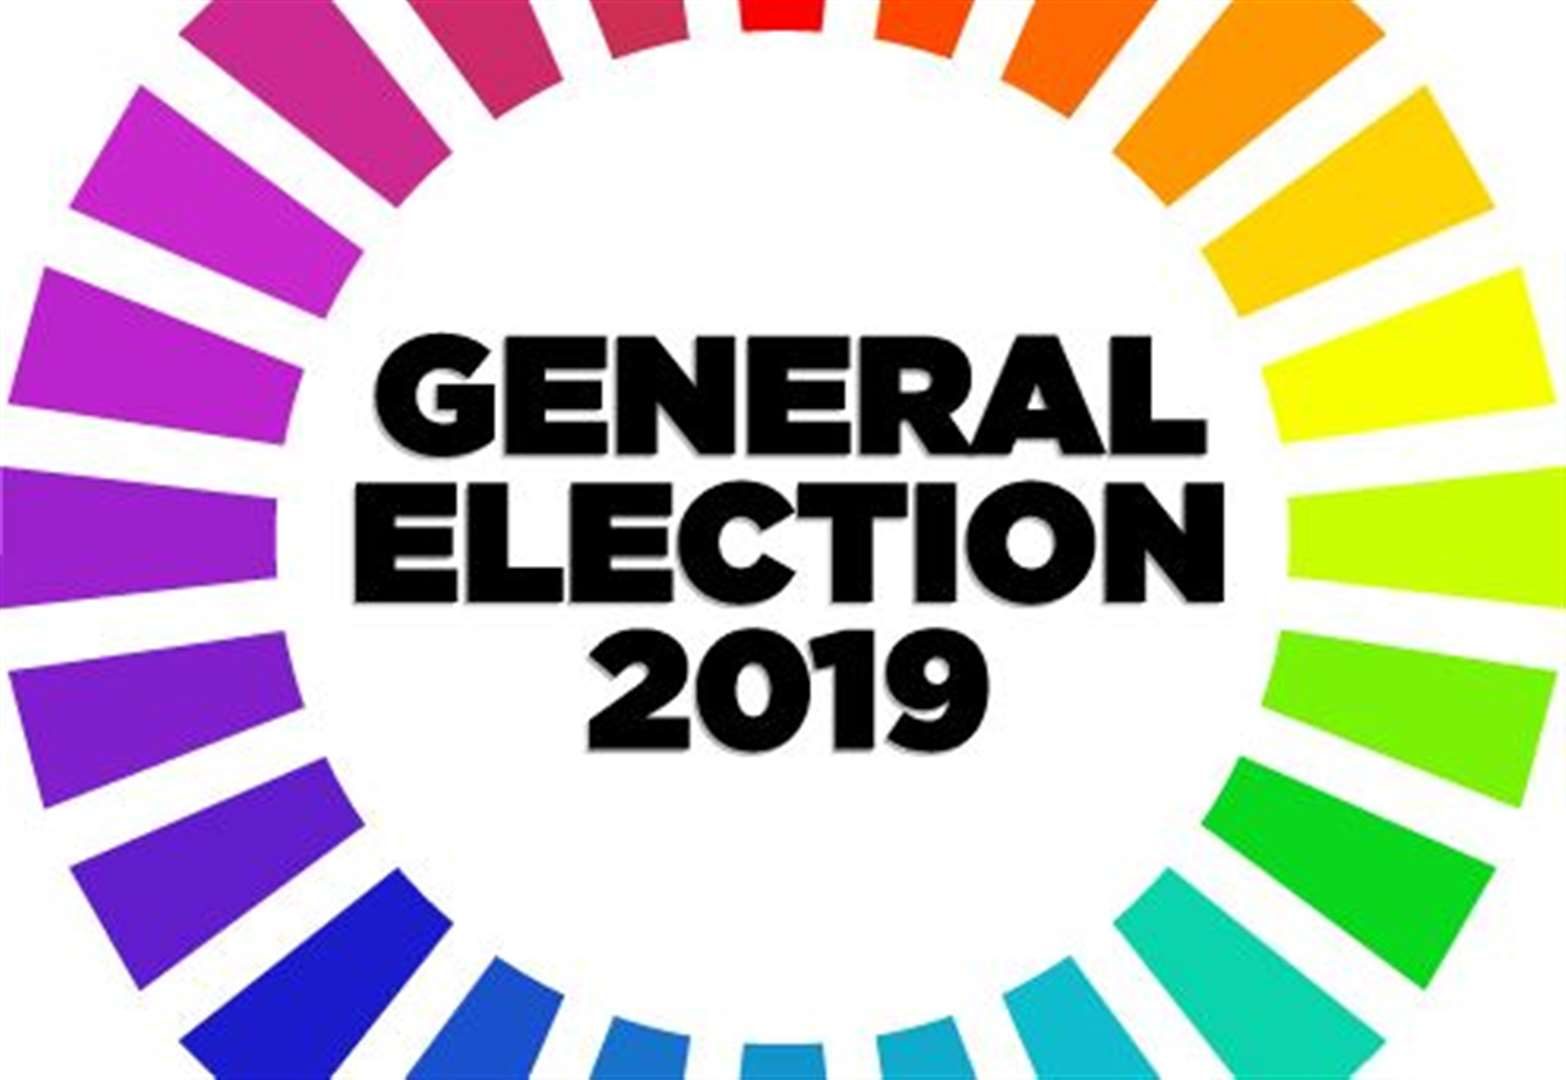 General Election 2019 candidates for Sittingbourne and Sheppey